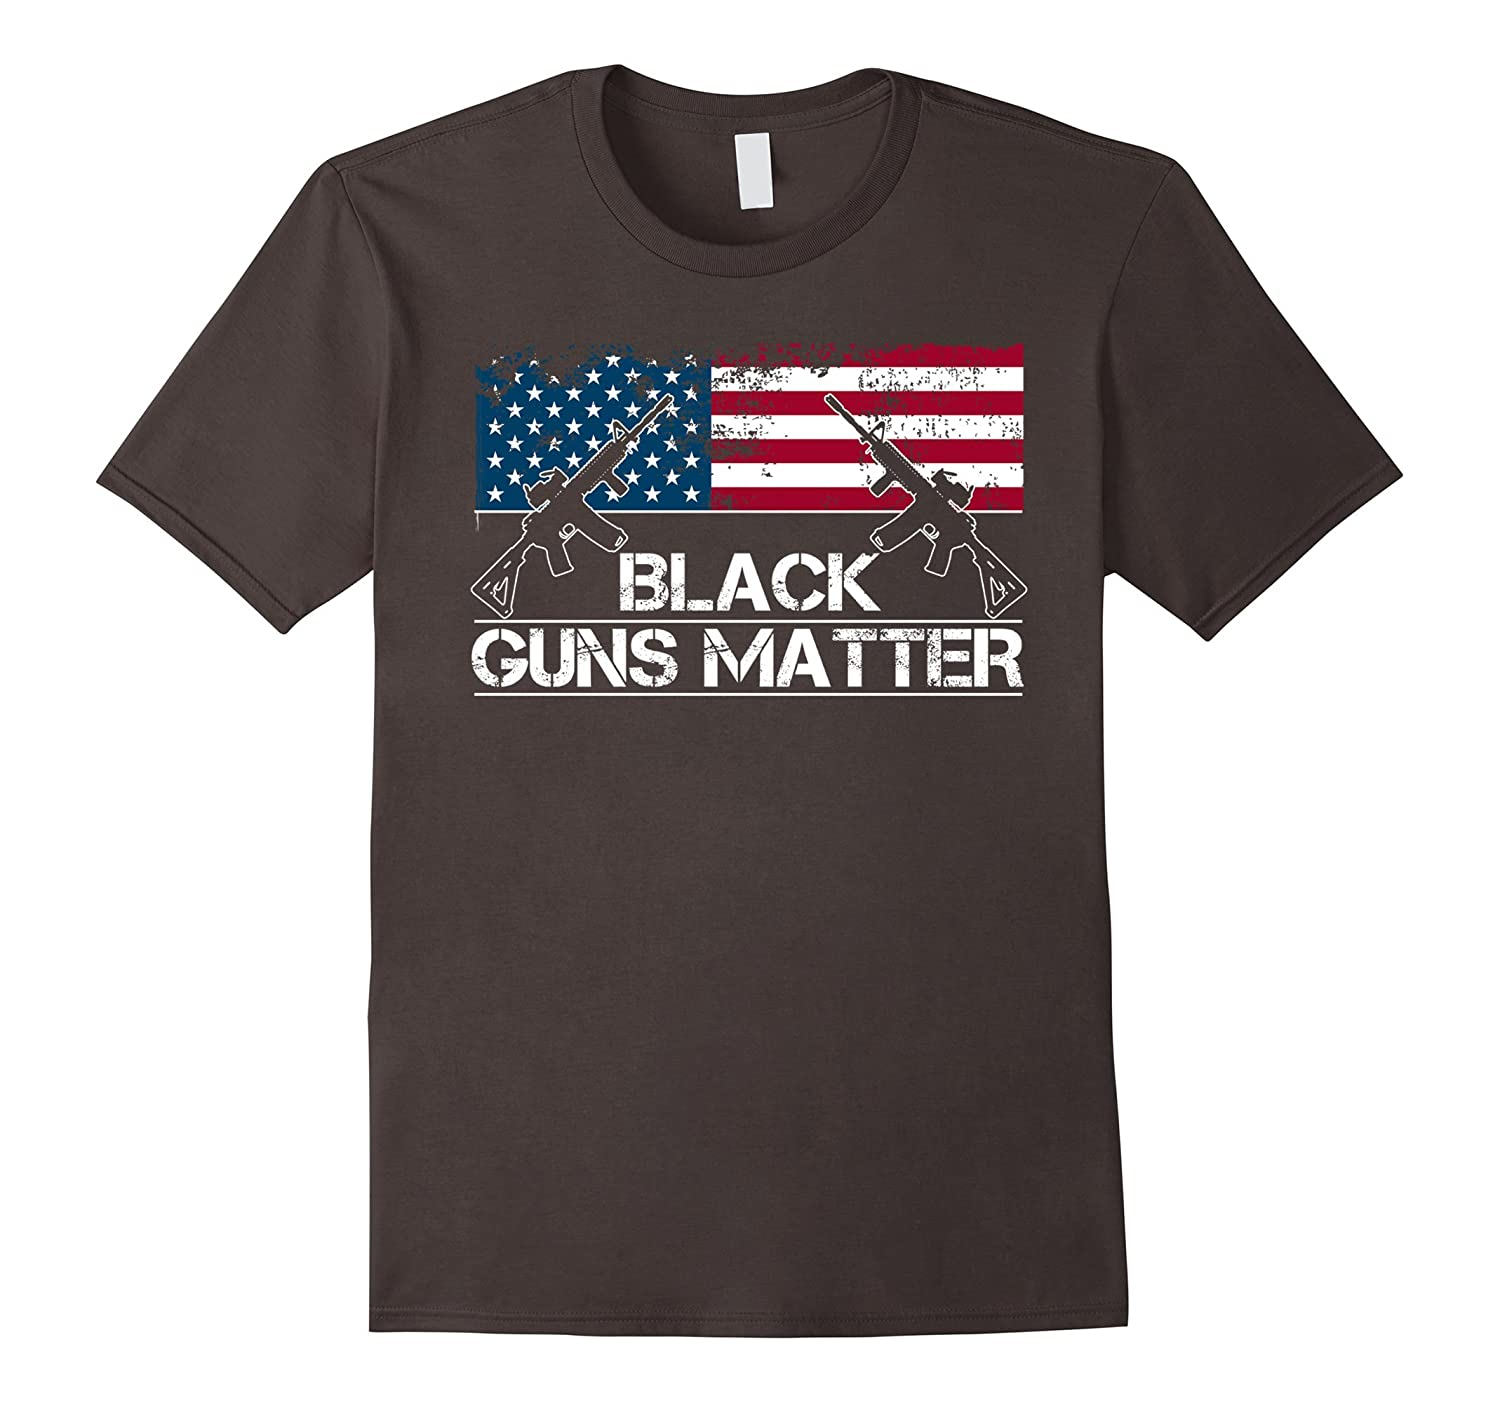 Black Guns Matter T-Shirt - Black Rifles Matter - Nice Gift-PL